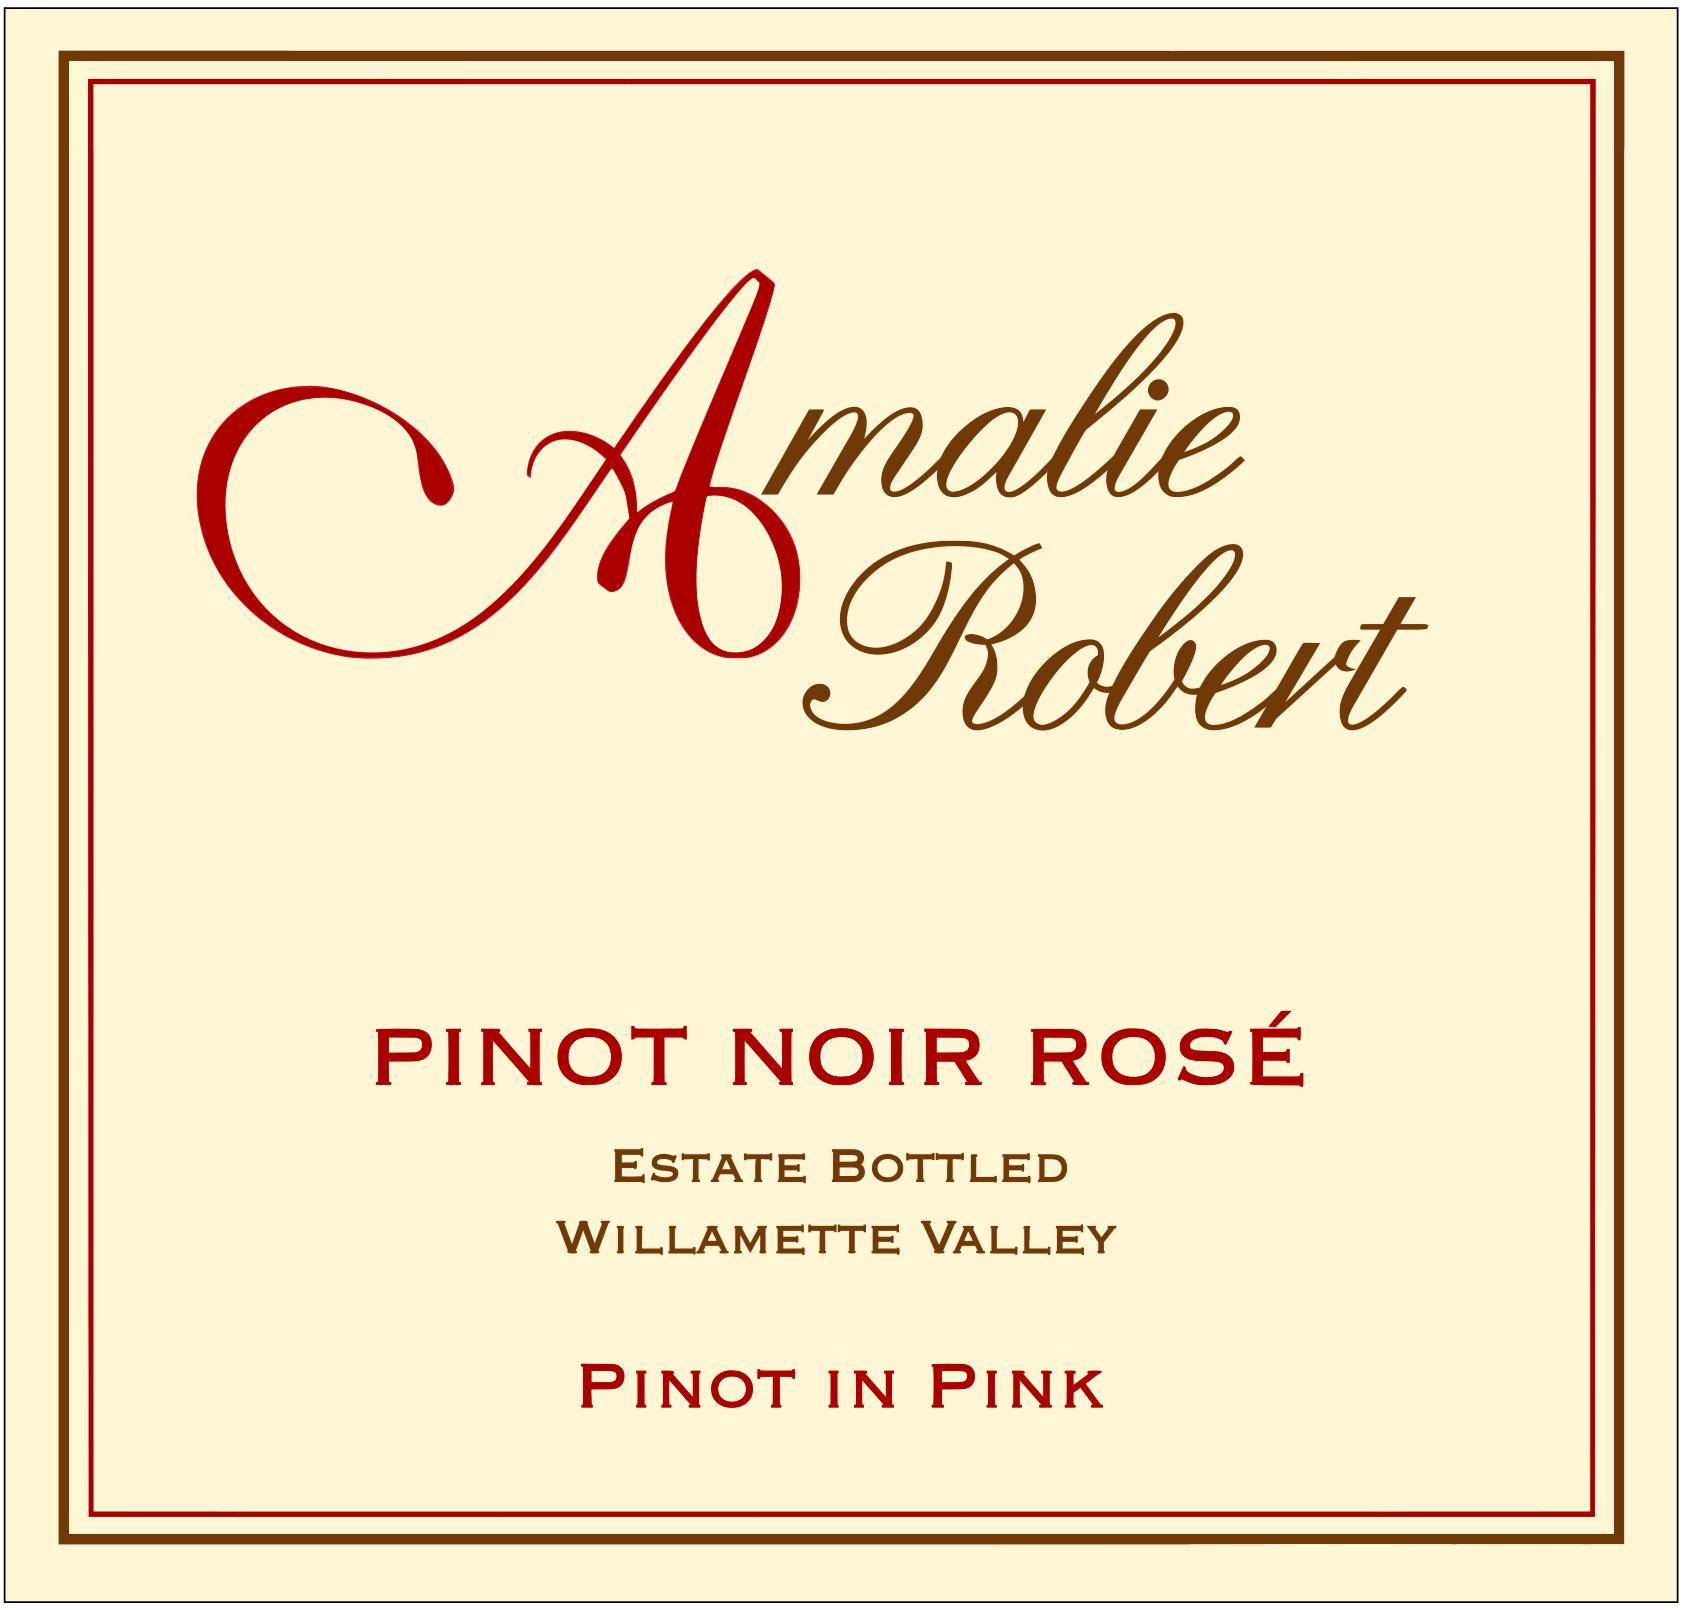 2019 Pinot in Pink - Pinot Noir Rose MAIN